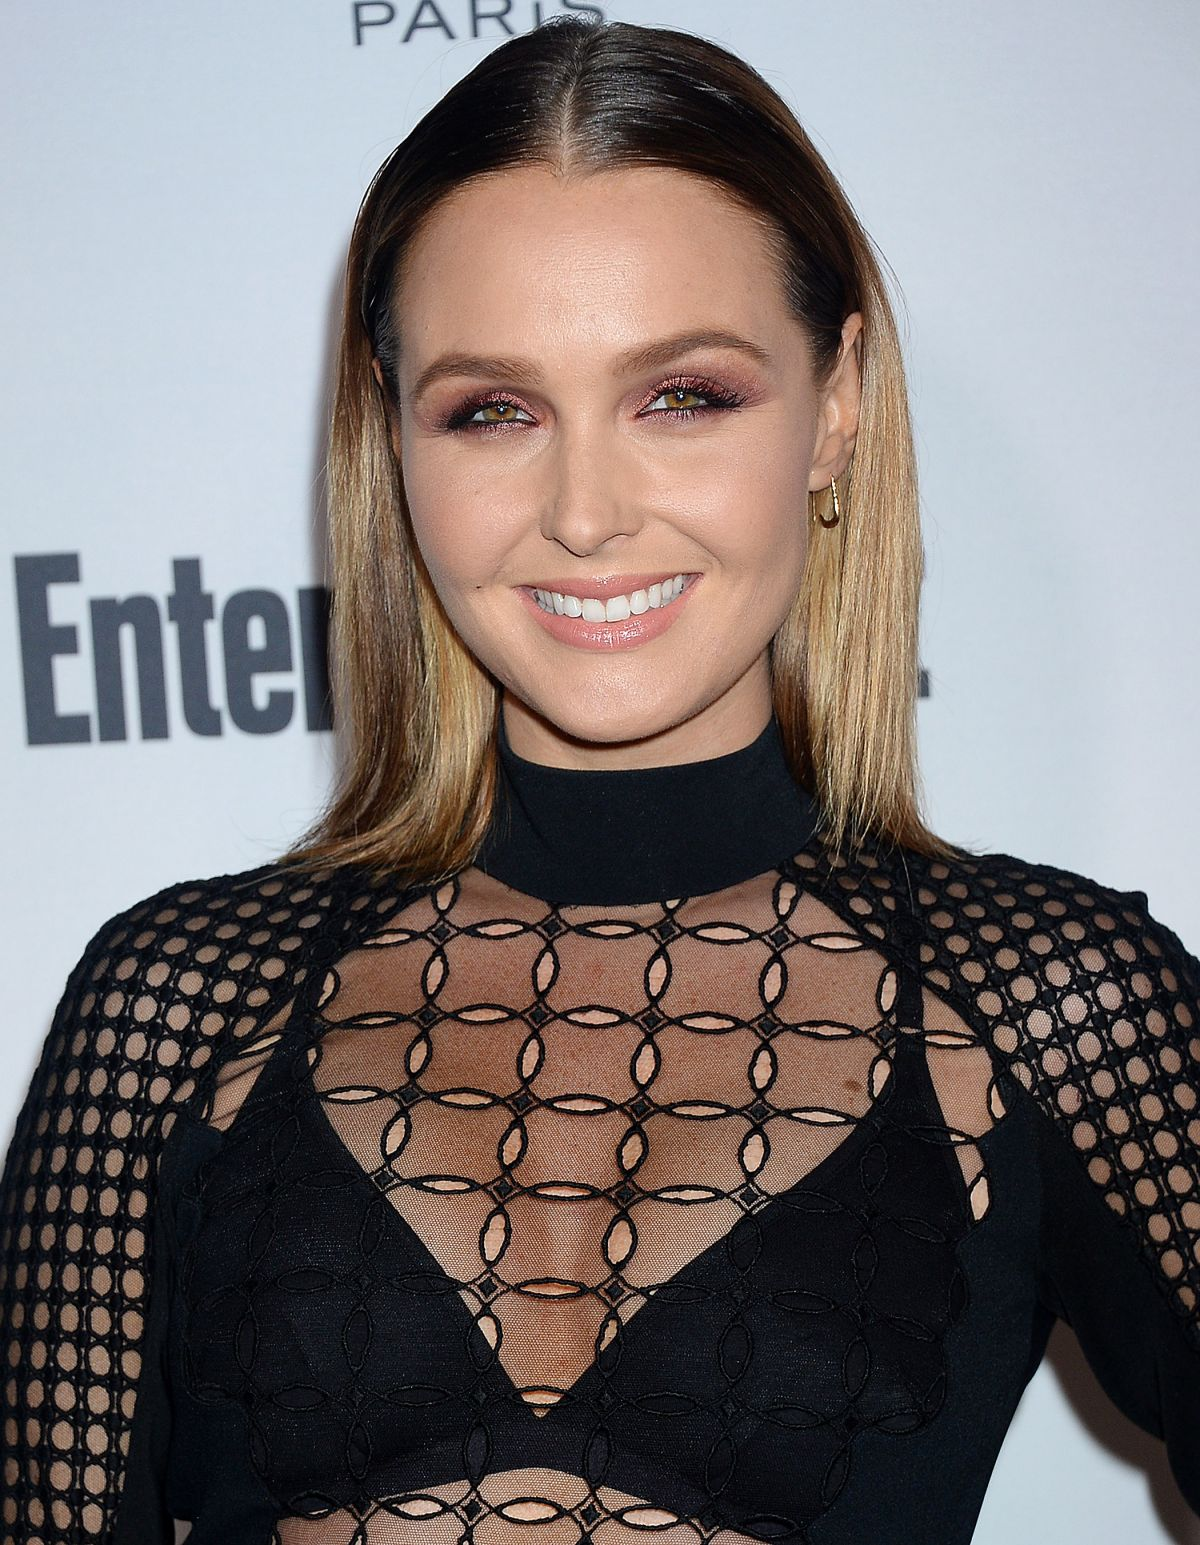 CAMILLA LUDDINGTON at Entertainment Weekly 2016 Pre-emmy Party in Los Angeles 09/16/2016